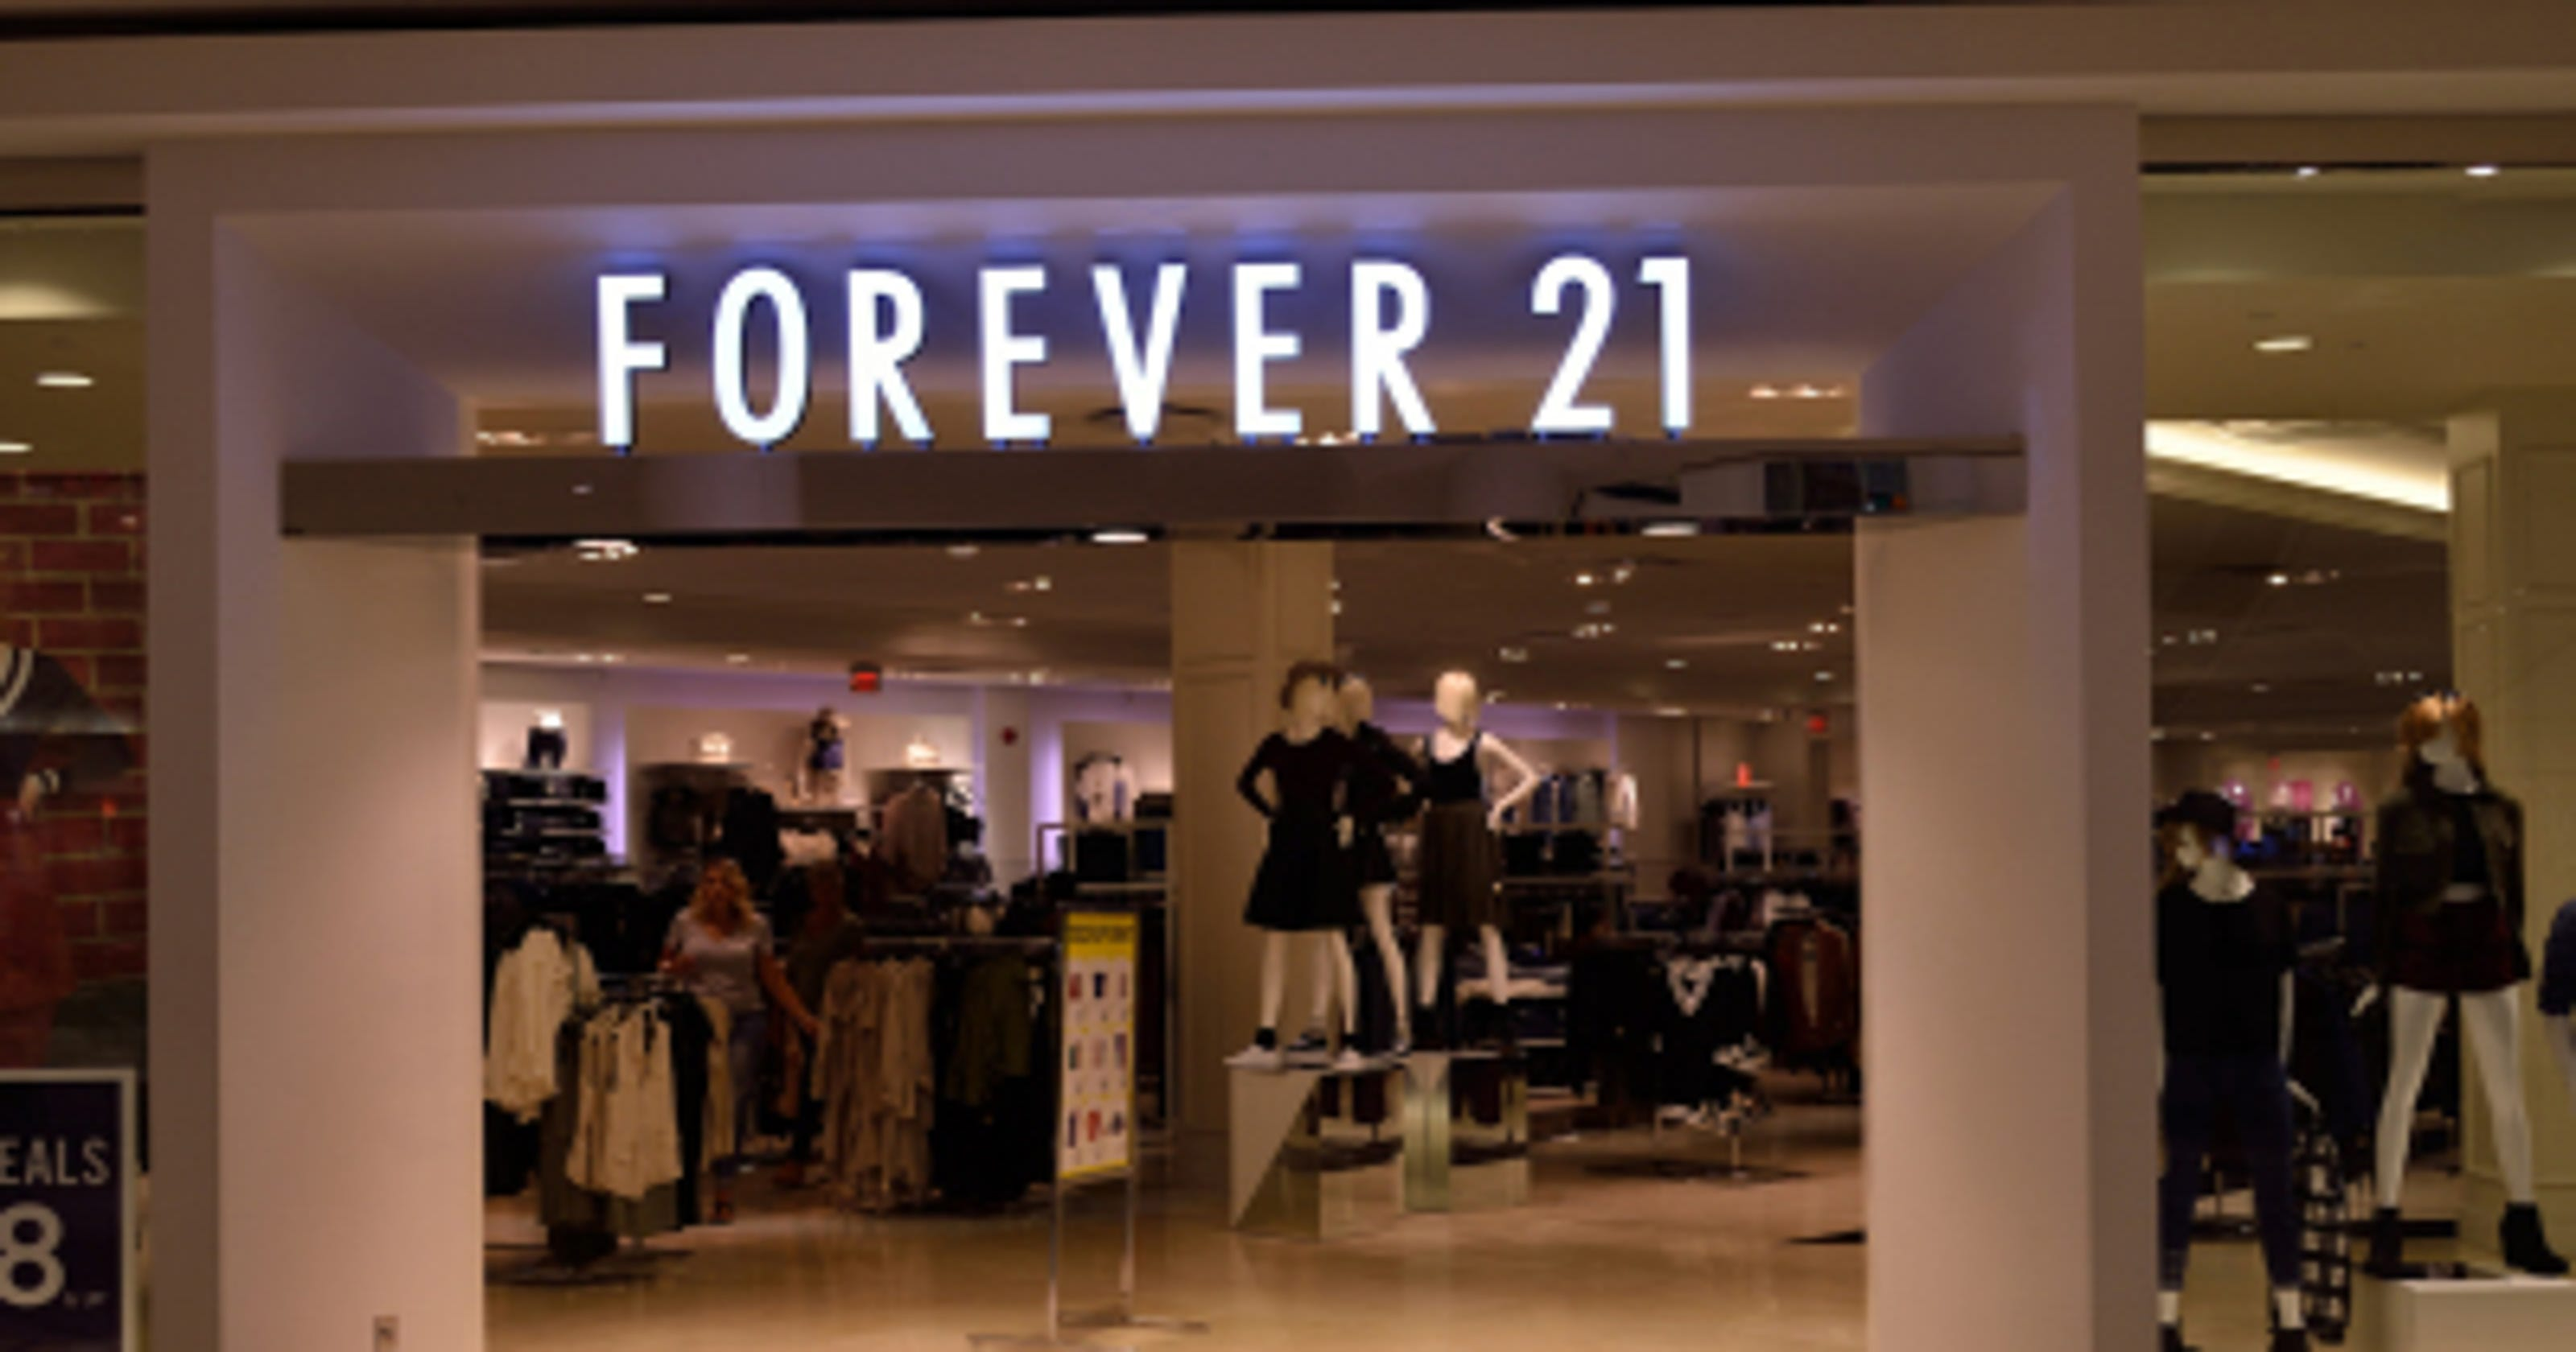 Forever 21 closings 2019: What stores could close as part of the company's bankruptcy